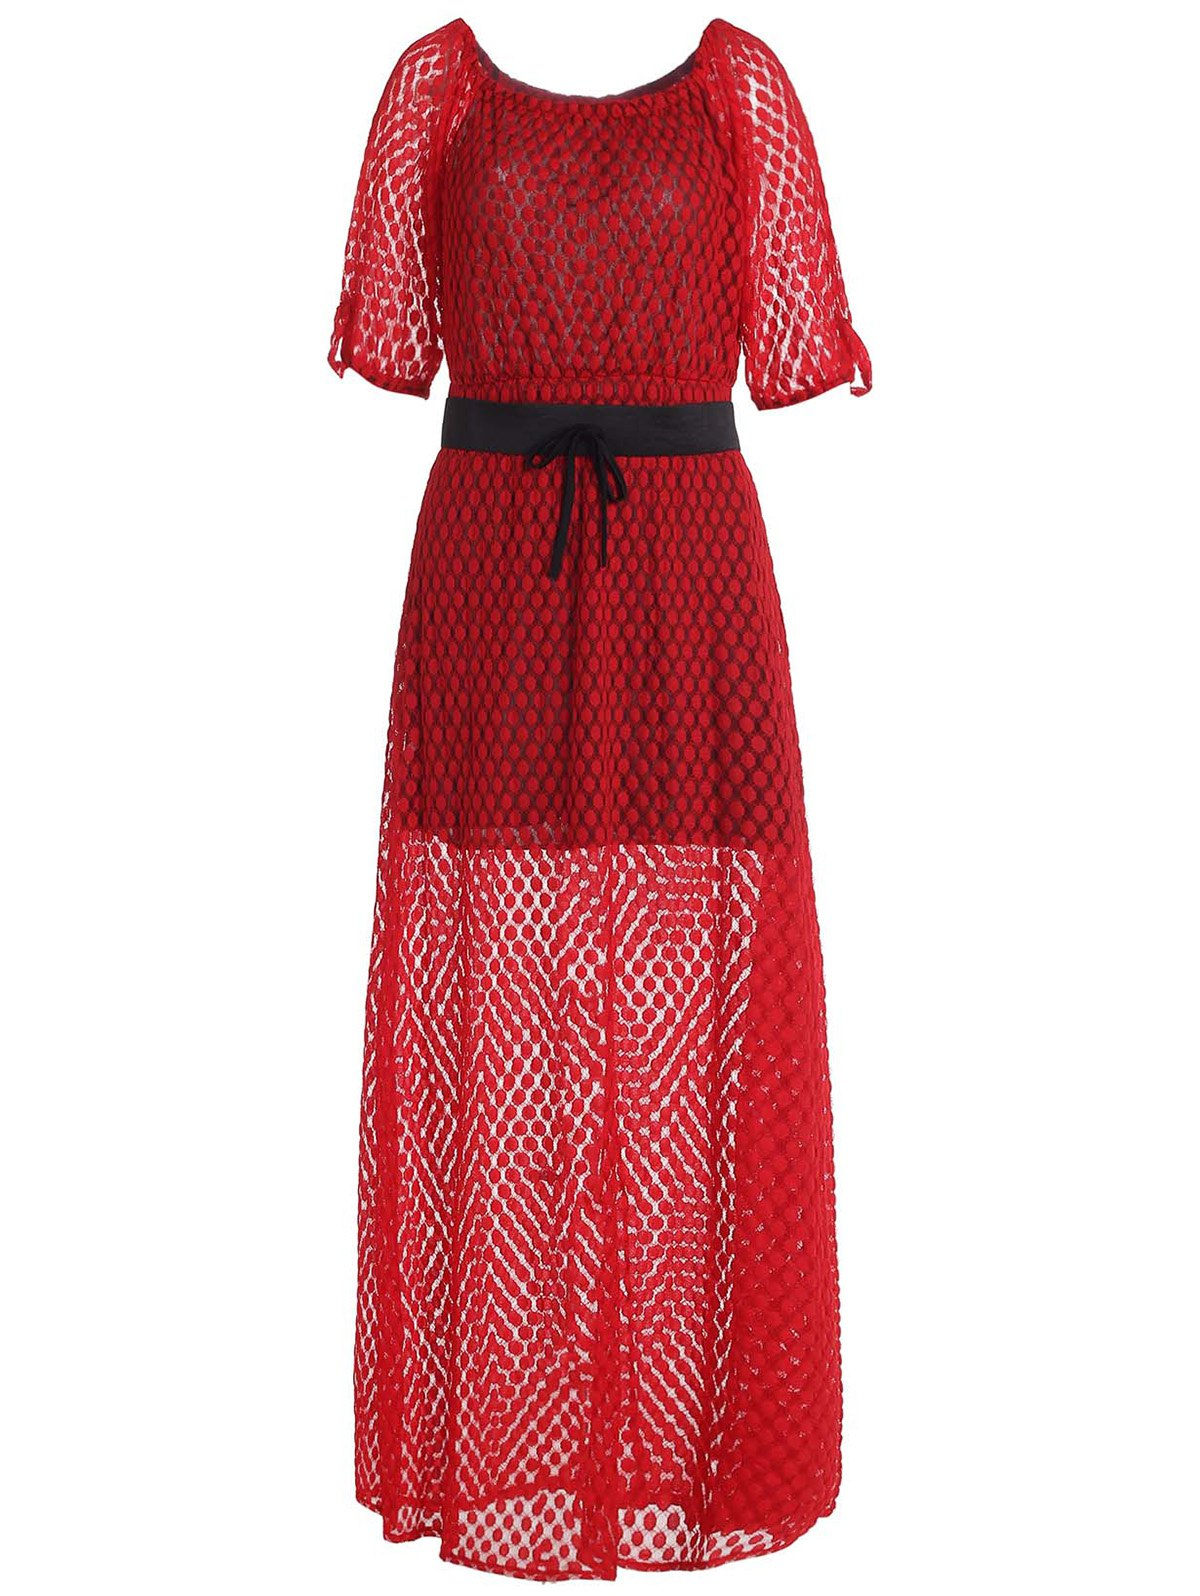 Charming Printed Slash Neck 3/4 Sleeve Dress For Women - XL RED